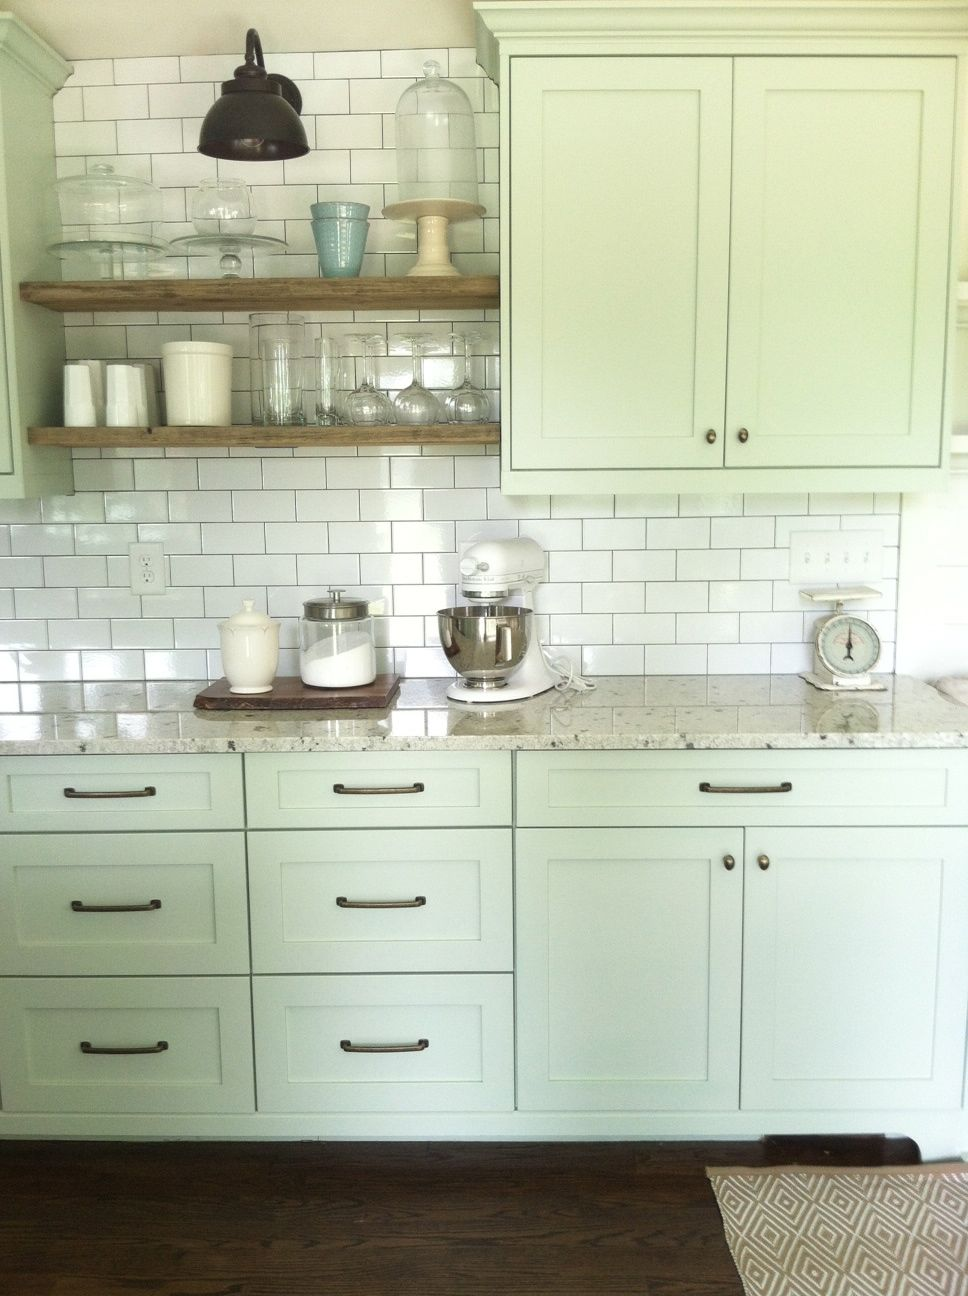 Nice cabinet color and full wall of subway tile with open for Full wall kitchen units